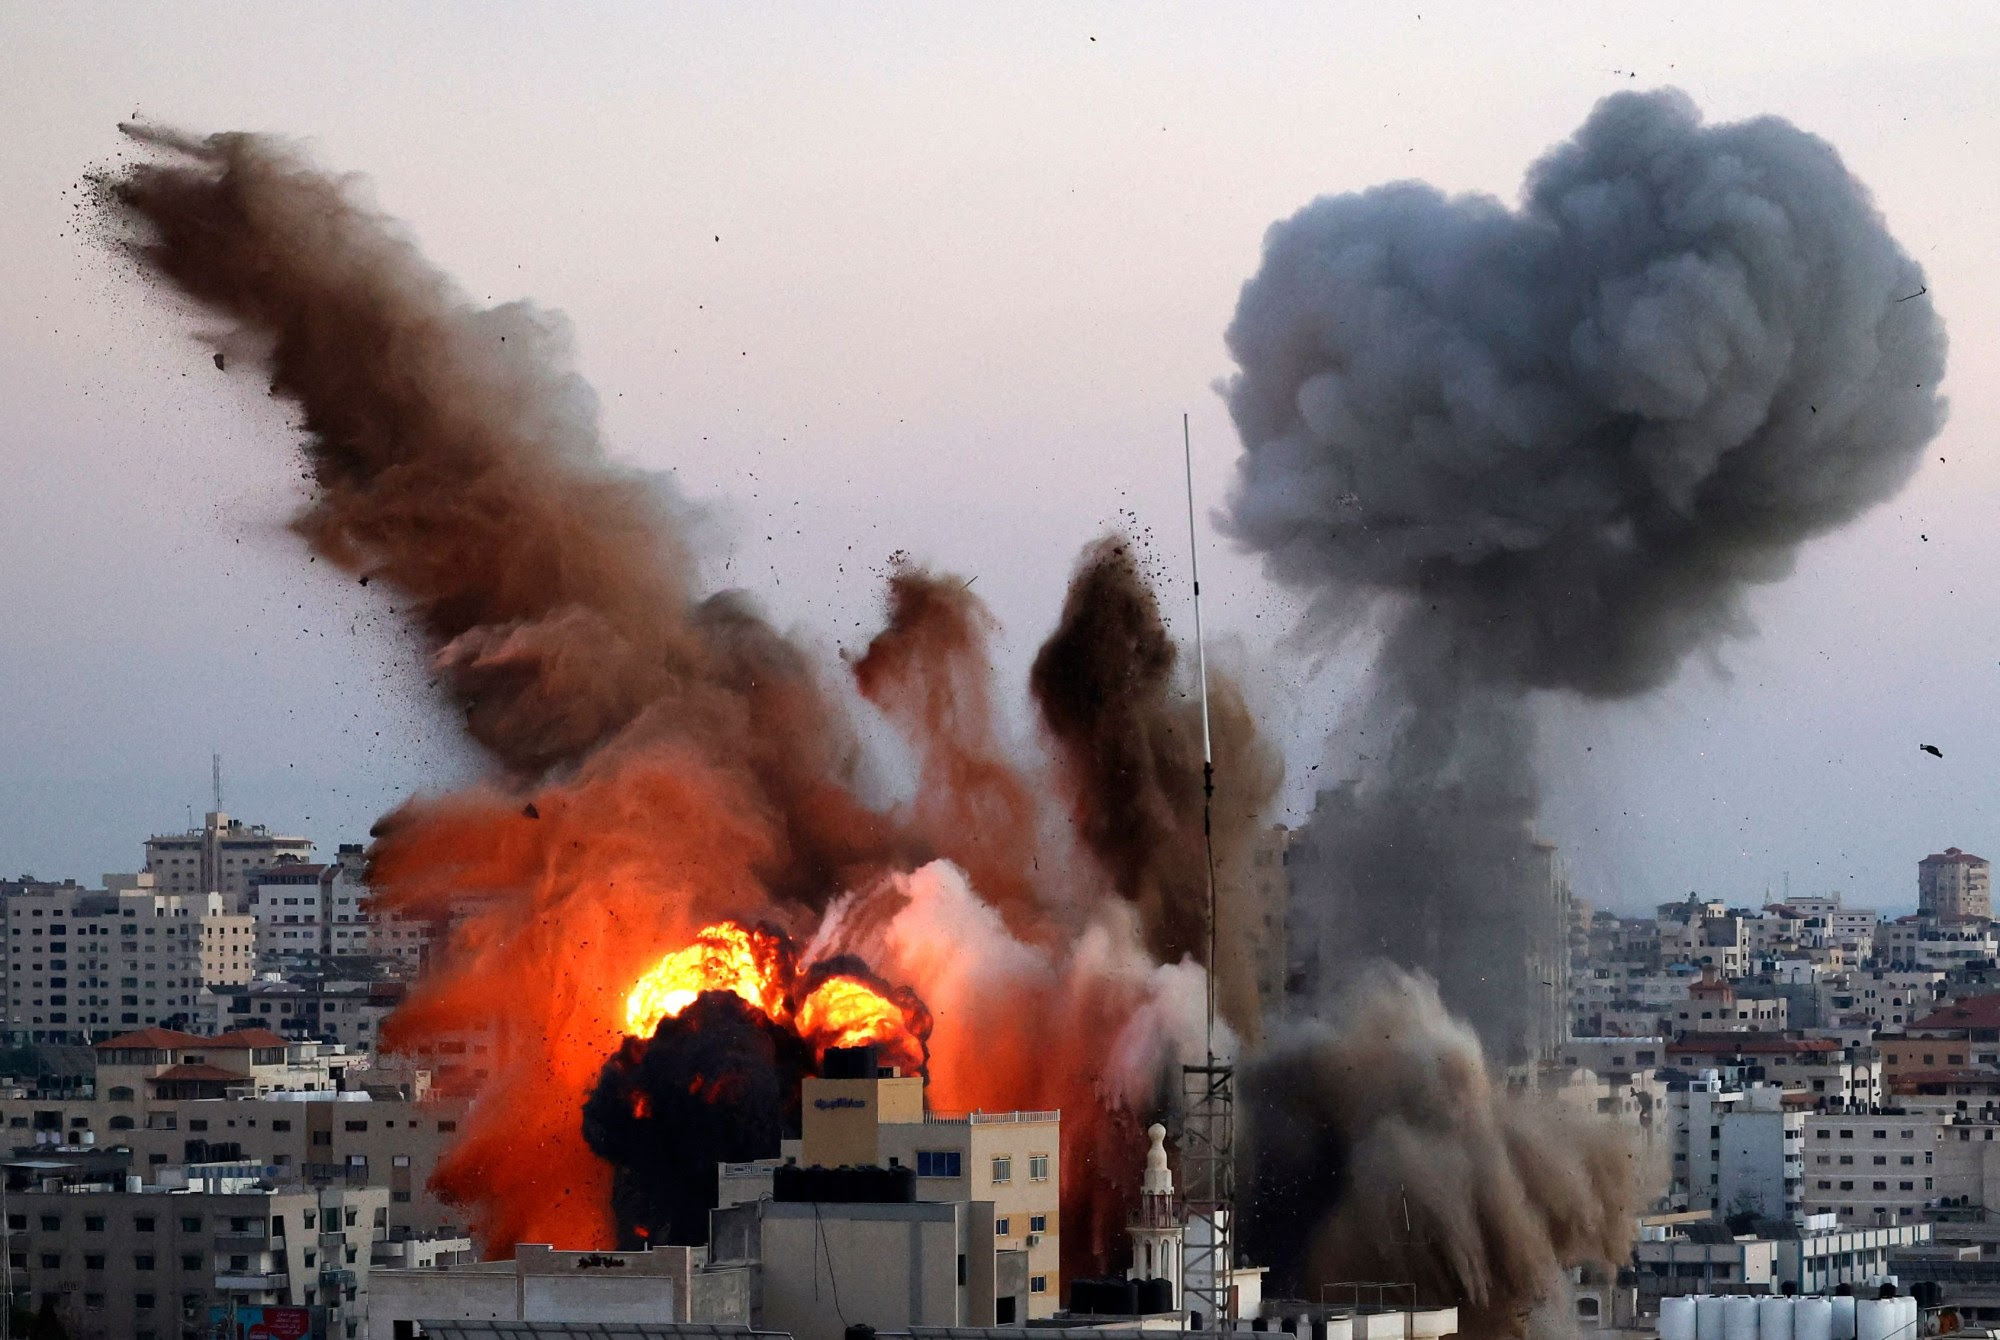 An explosion in Gaza after an Israeli airstrike